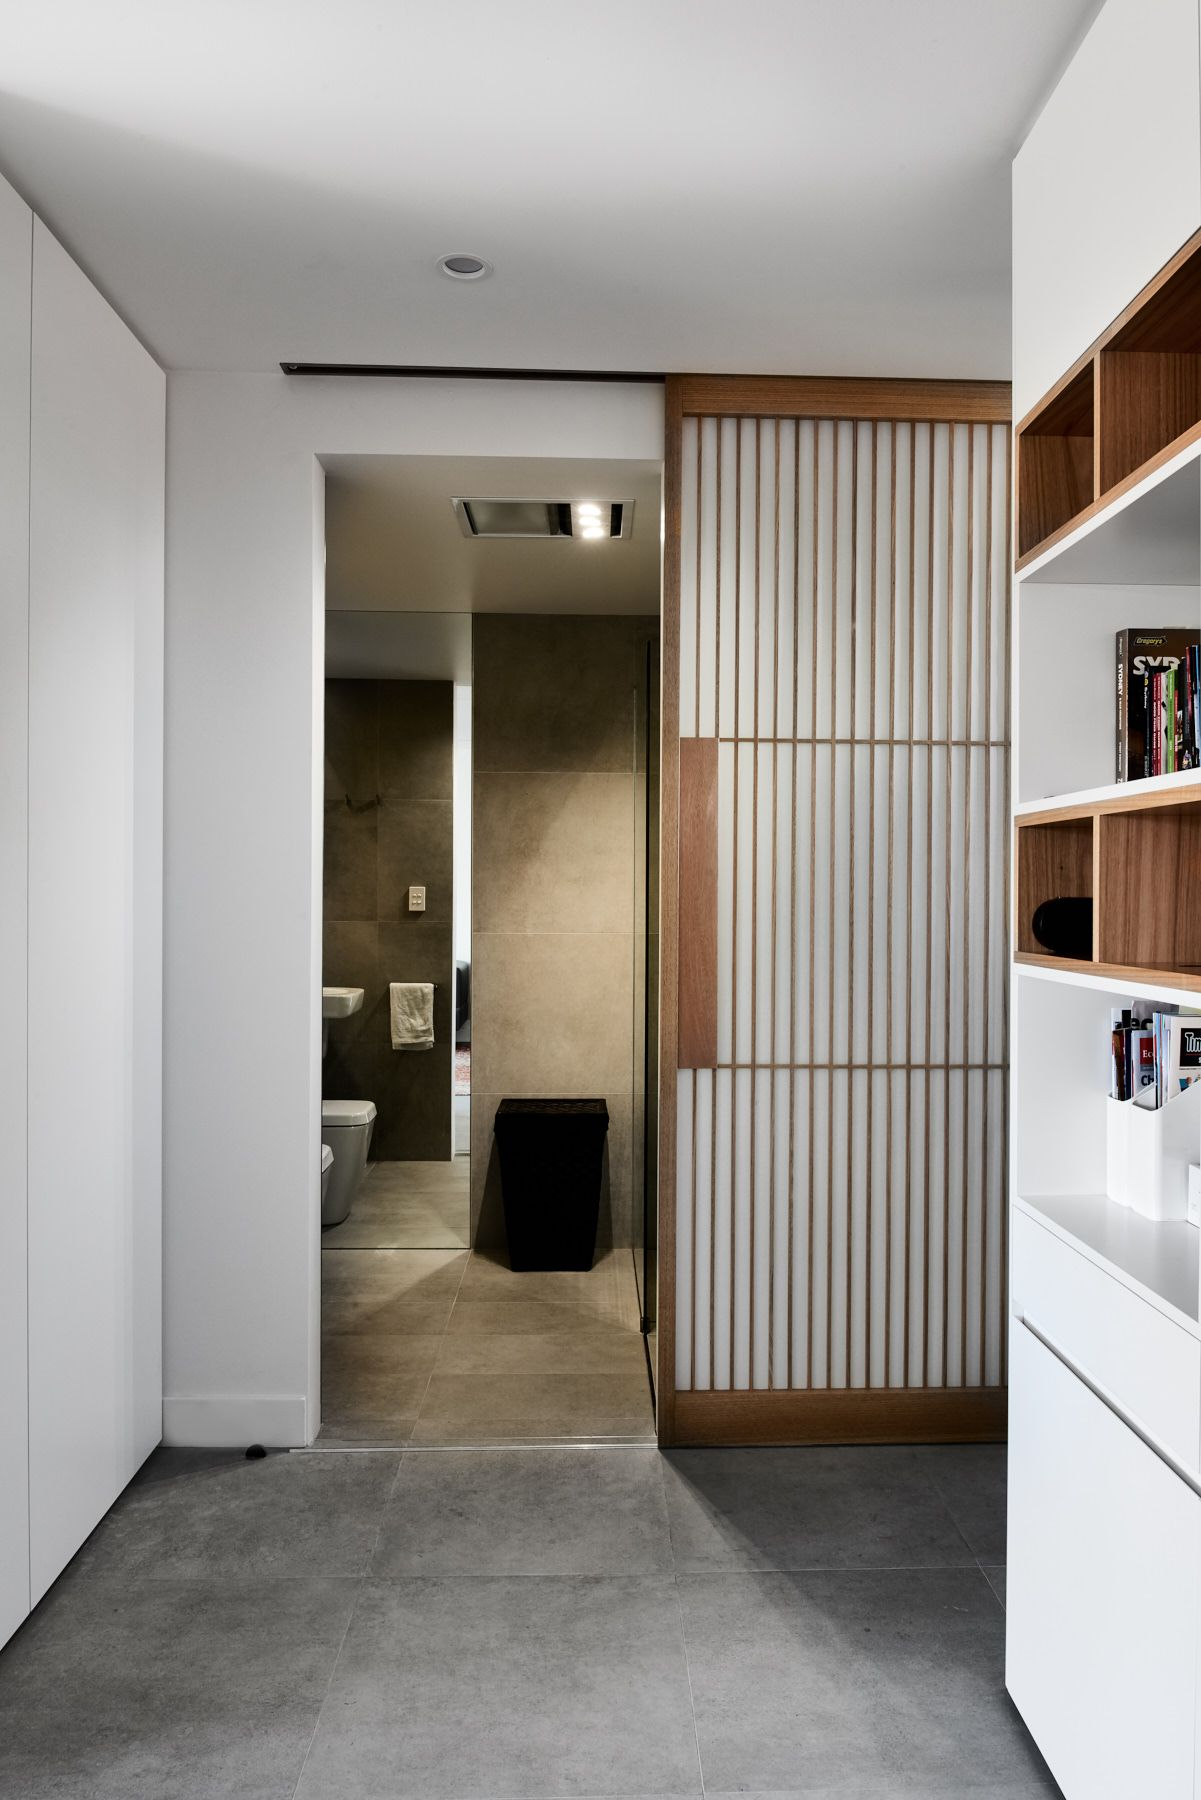 japanese apartment design home design interior design styles for apartments Design Bedroom Apartments Outdoor Style Restaurant Home Wood Slats Decor  Small Spaces Living Room Hotel Kengo Kuma Office Kitchen Wabi Sabi Colour  Window ...